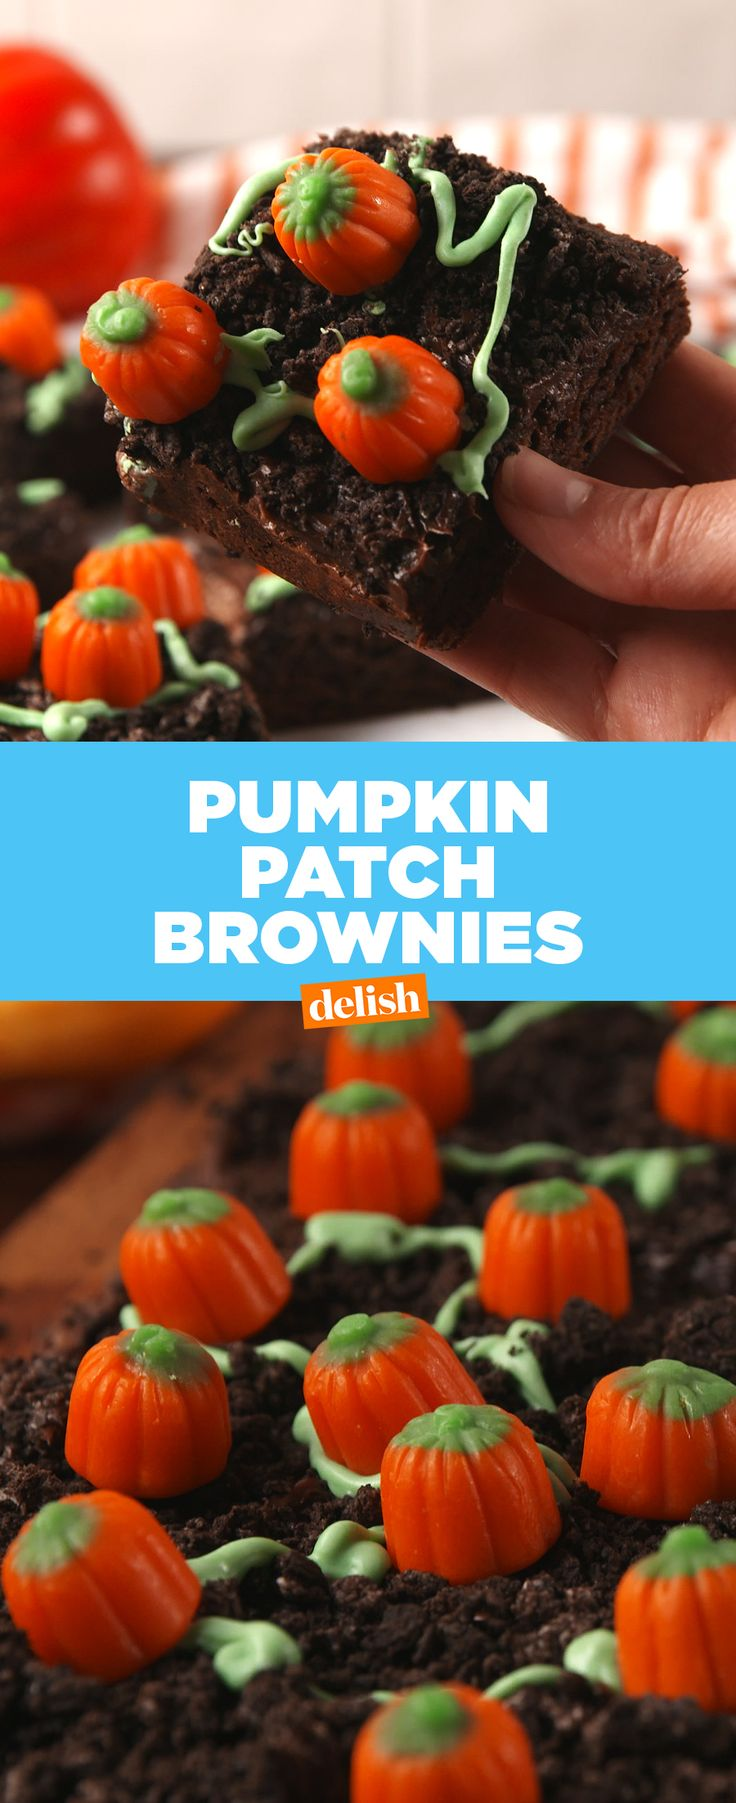 These Pumpkin Patch Brownies are the no-fail Halloween treat you'll make every single year. Get the recipe at Delish.com.